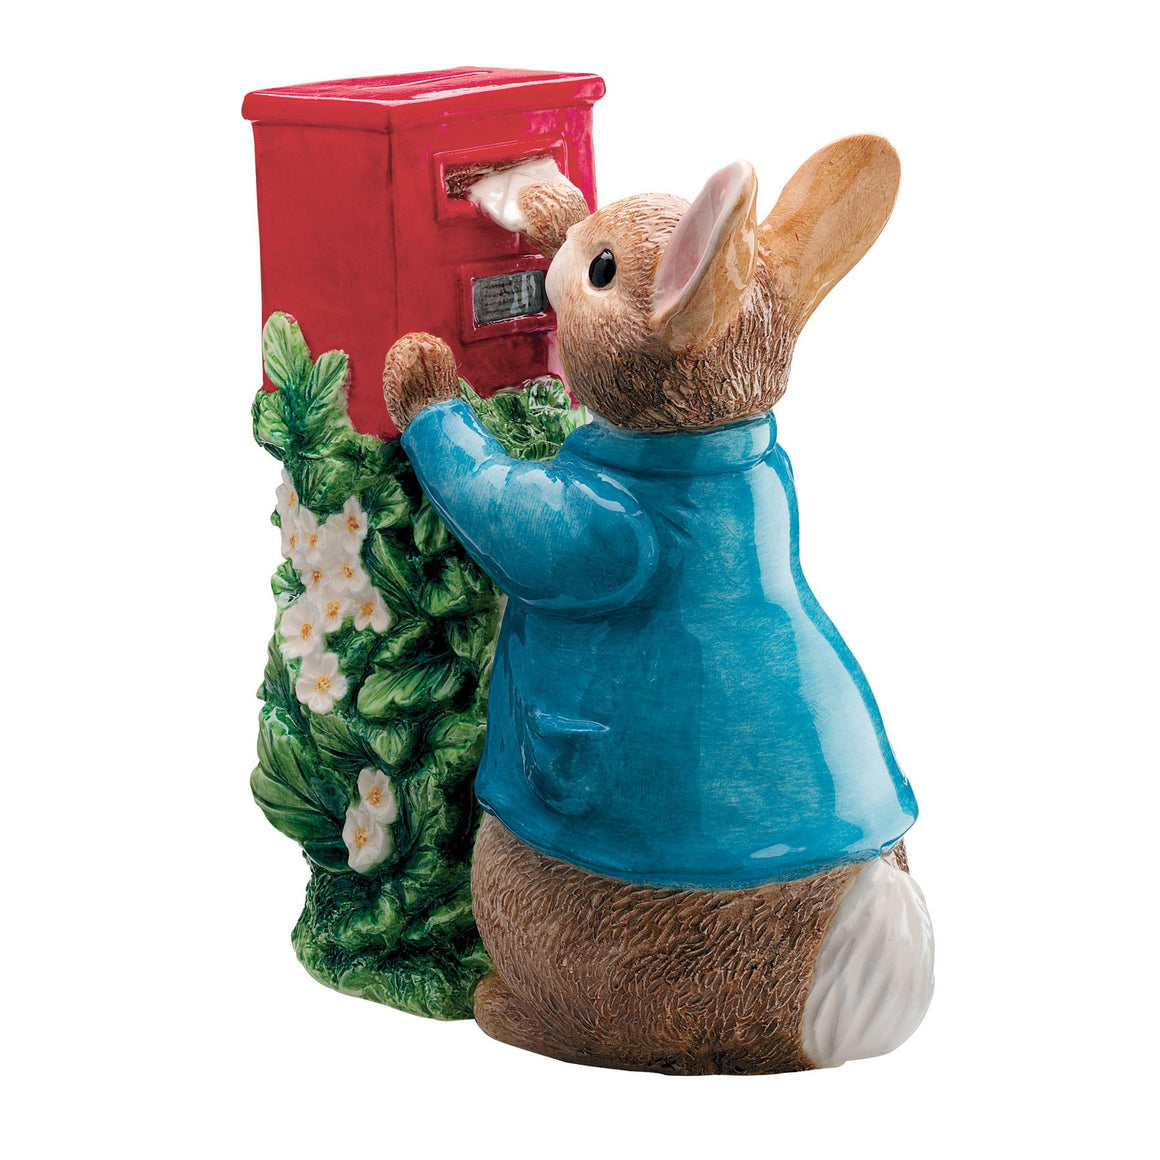 Peter Rabbit Posting a Letter Money Bank by Beatrix Potter